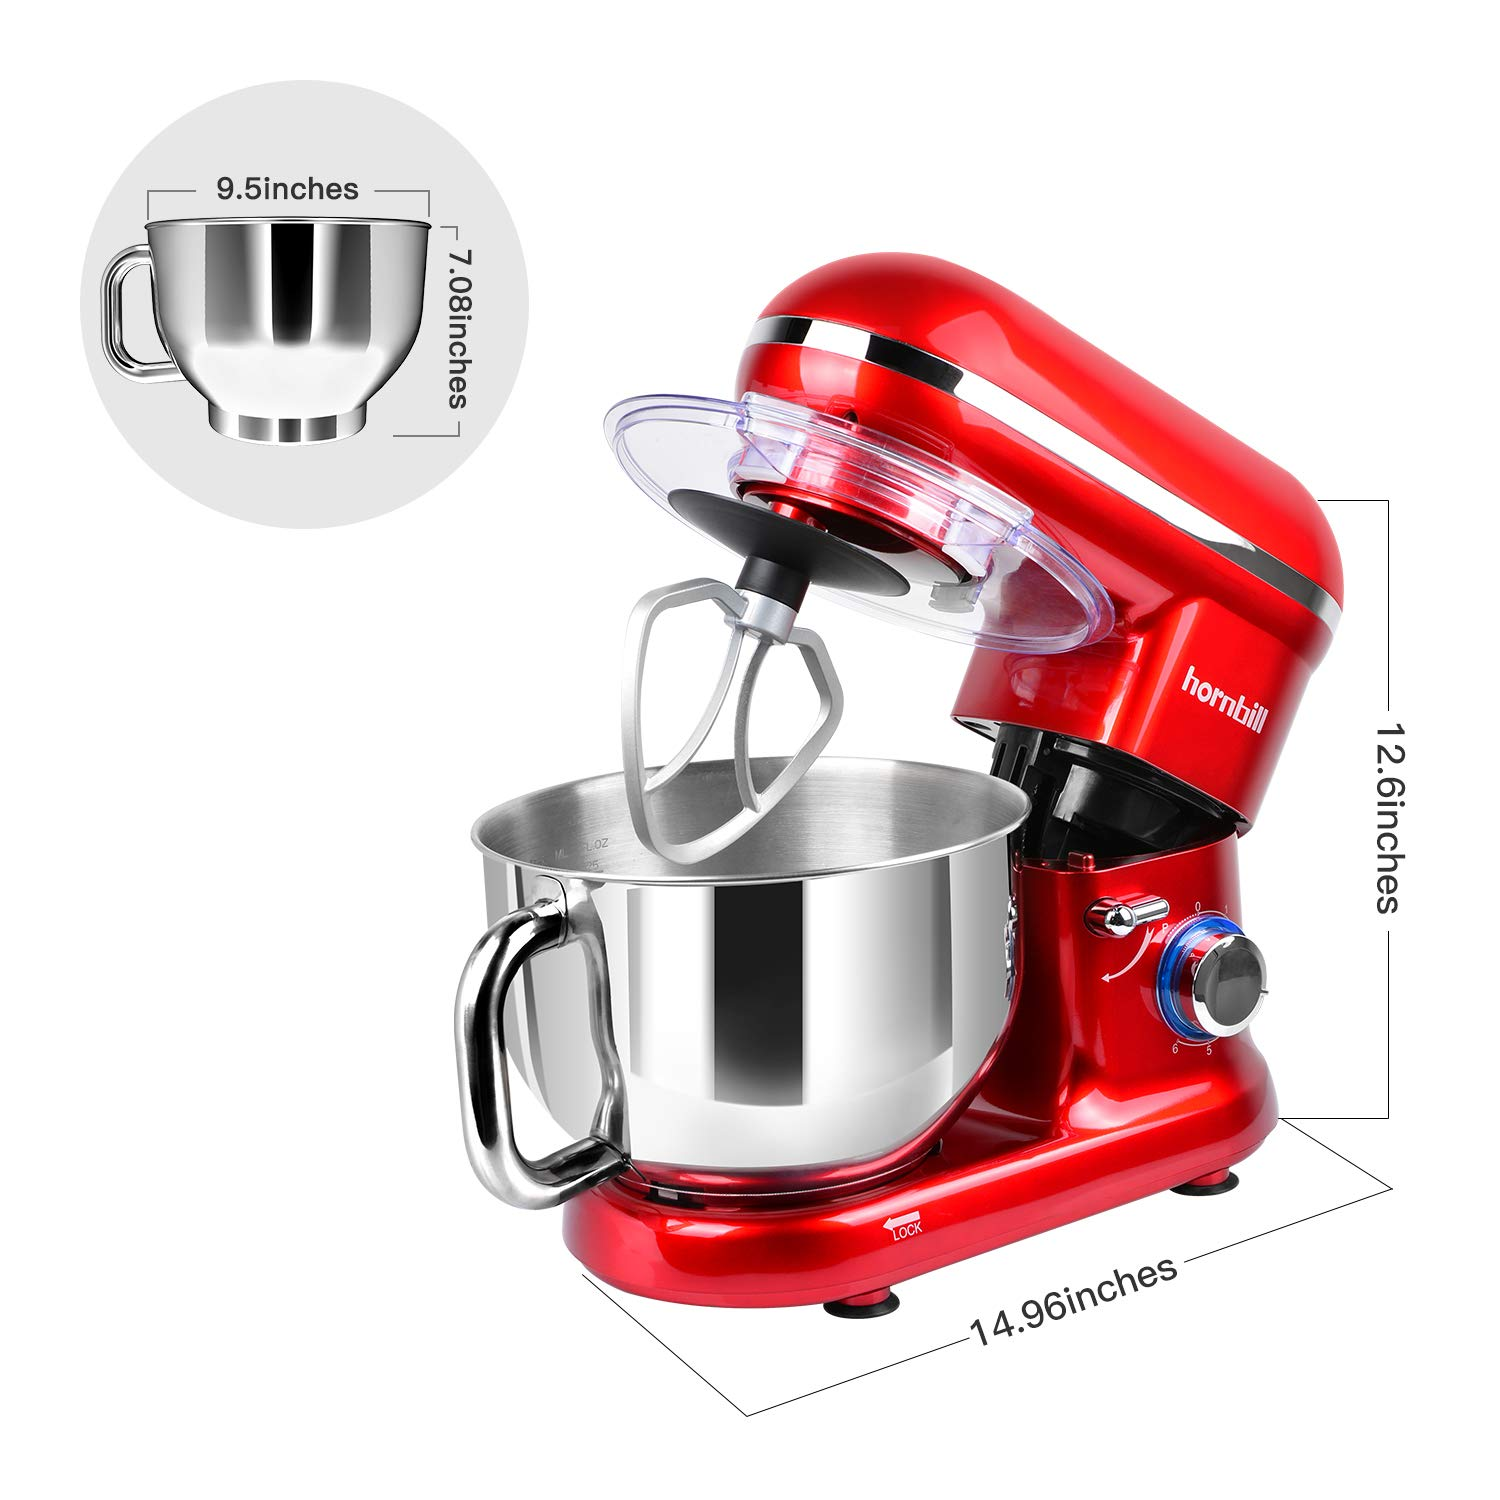 Hornbill Tilt-head Stand Mixer, Electric Mixer 600W 6-Speed 5-Quart Stainless Steel Bowl Professional Kitchen Mixer With Dough Hook, Whisk, Beater(Red) by Hornbill (Image #2)